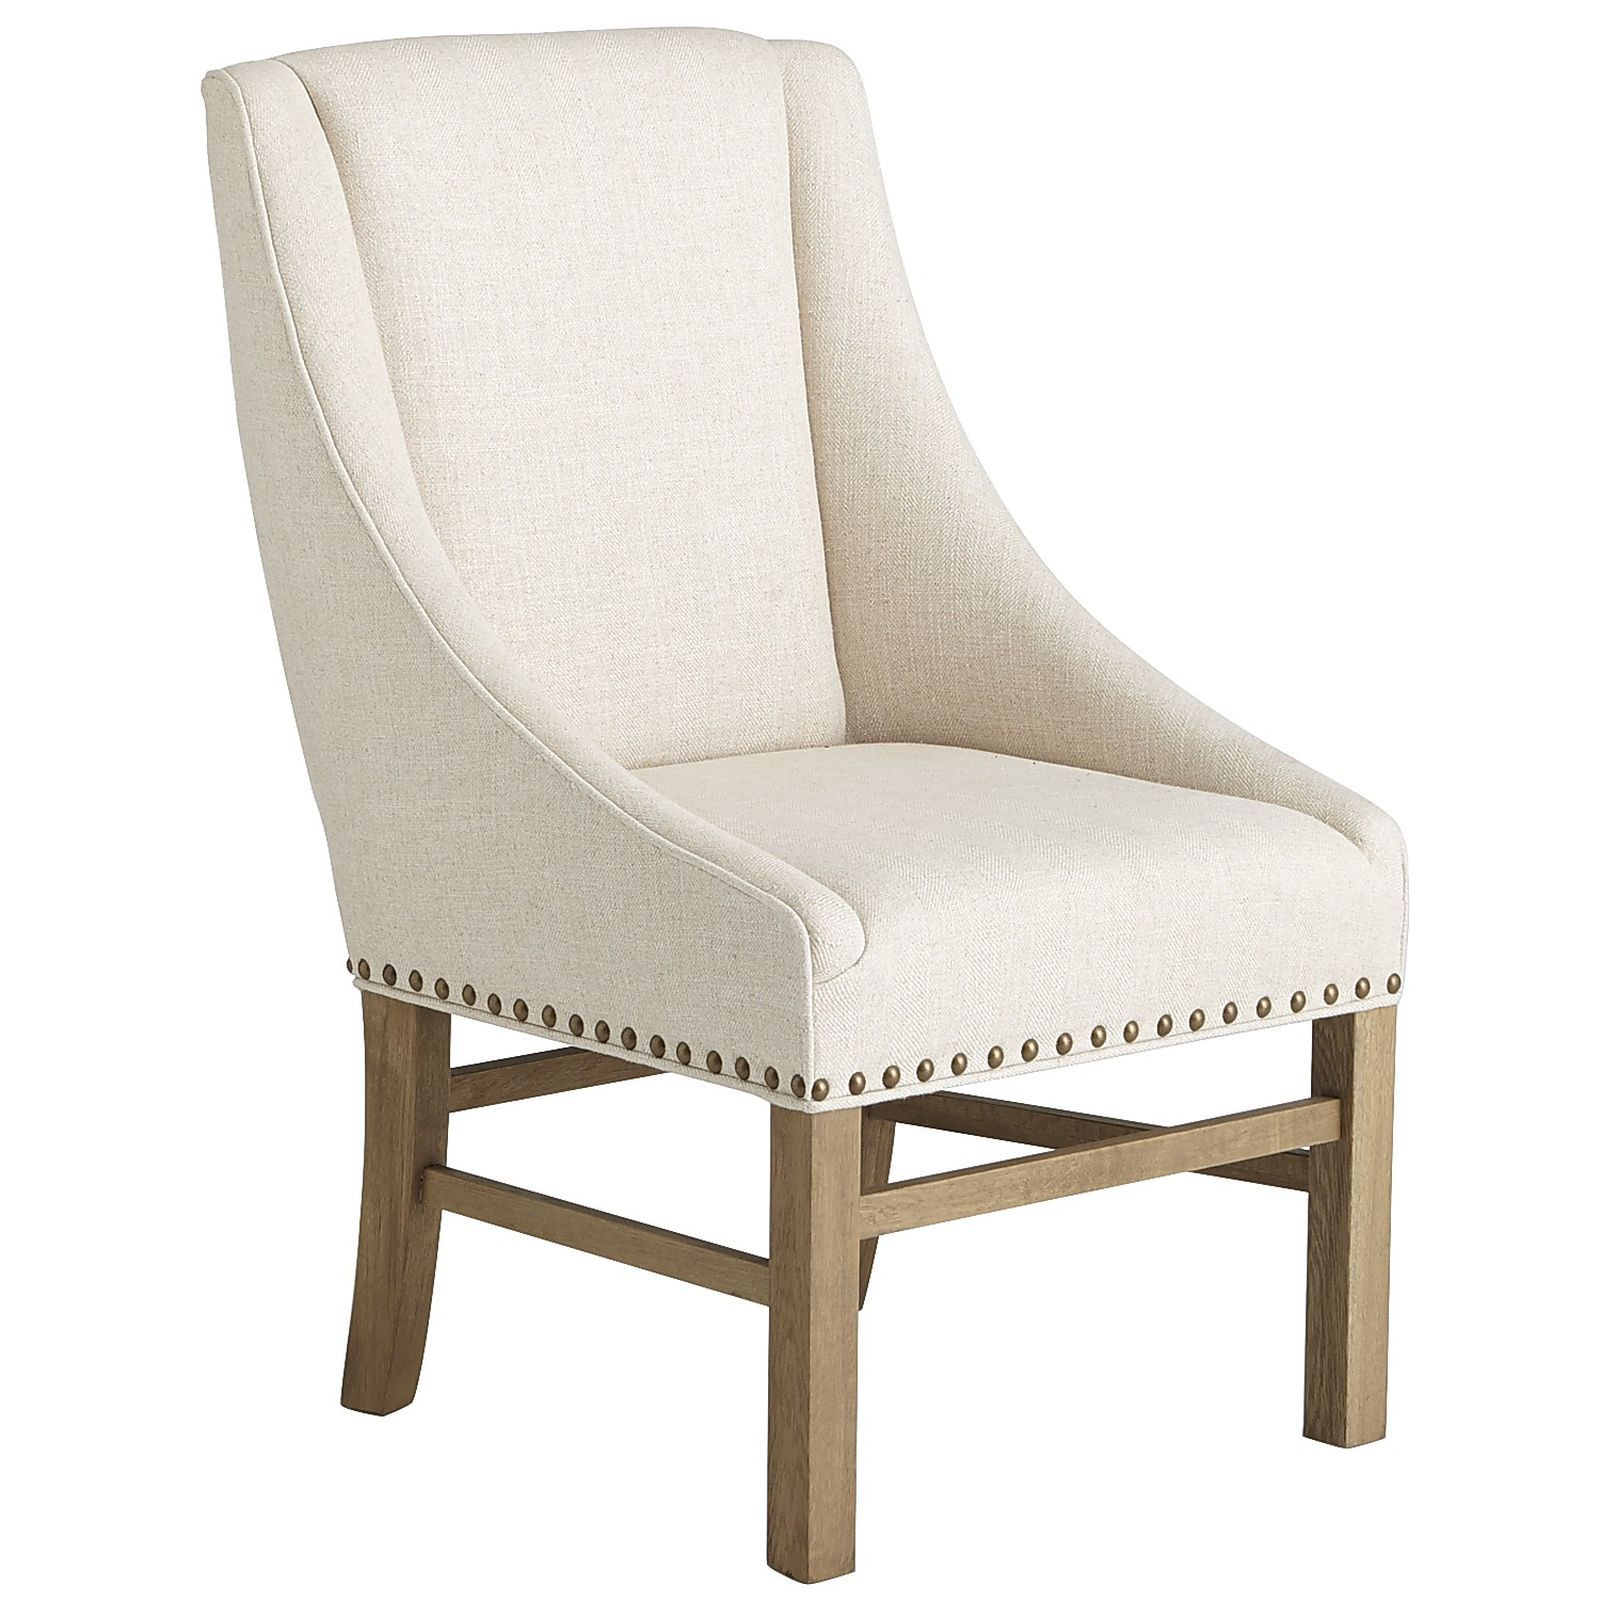 Pier One Living Room Chairs Miriam Dining Chair Natural Pier 1 Imports Dining Room